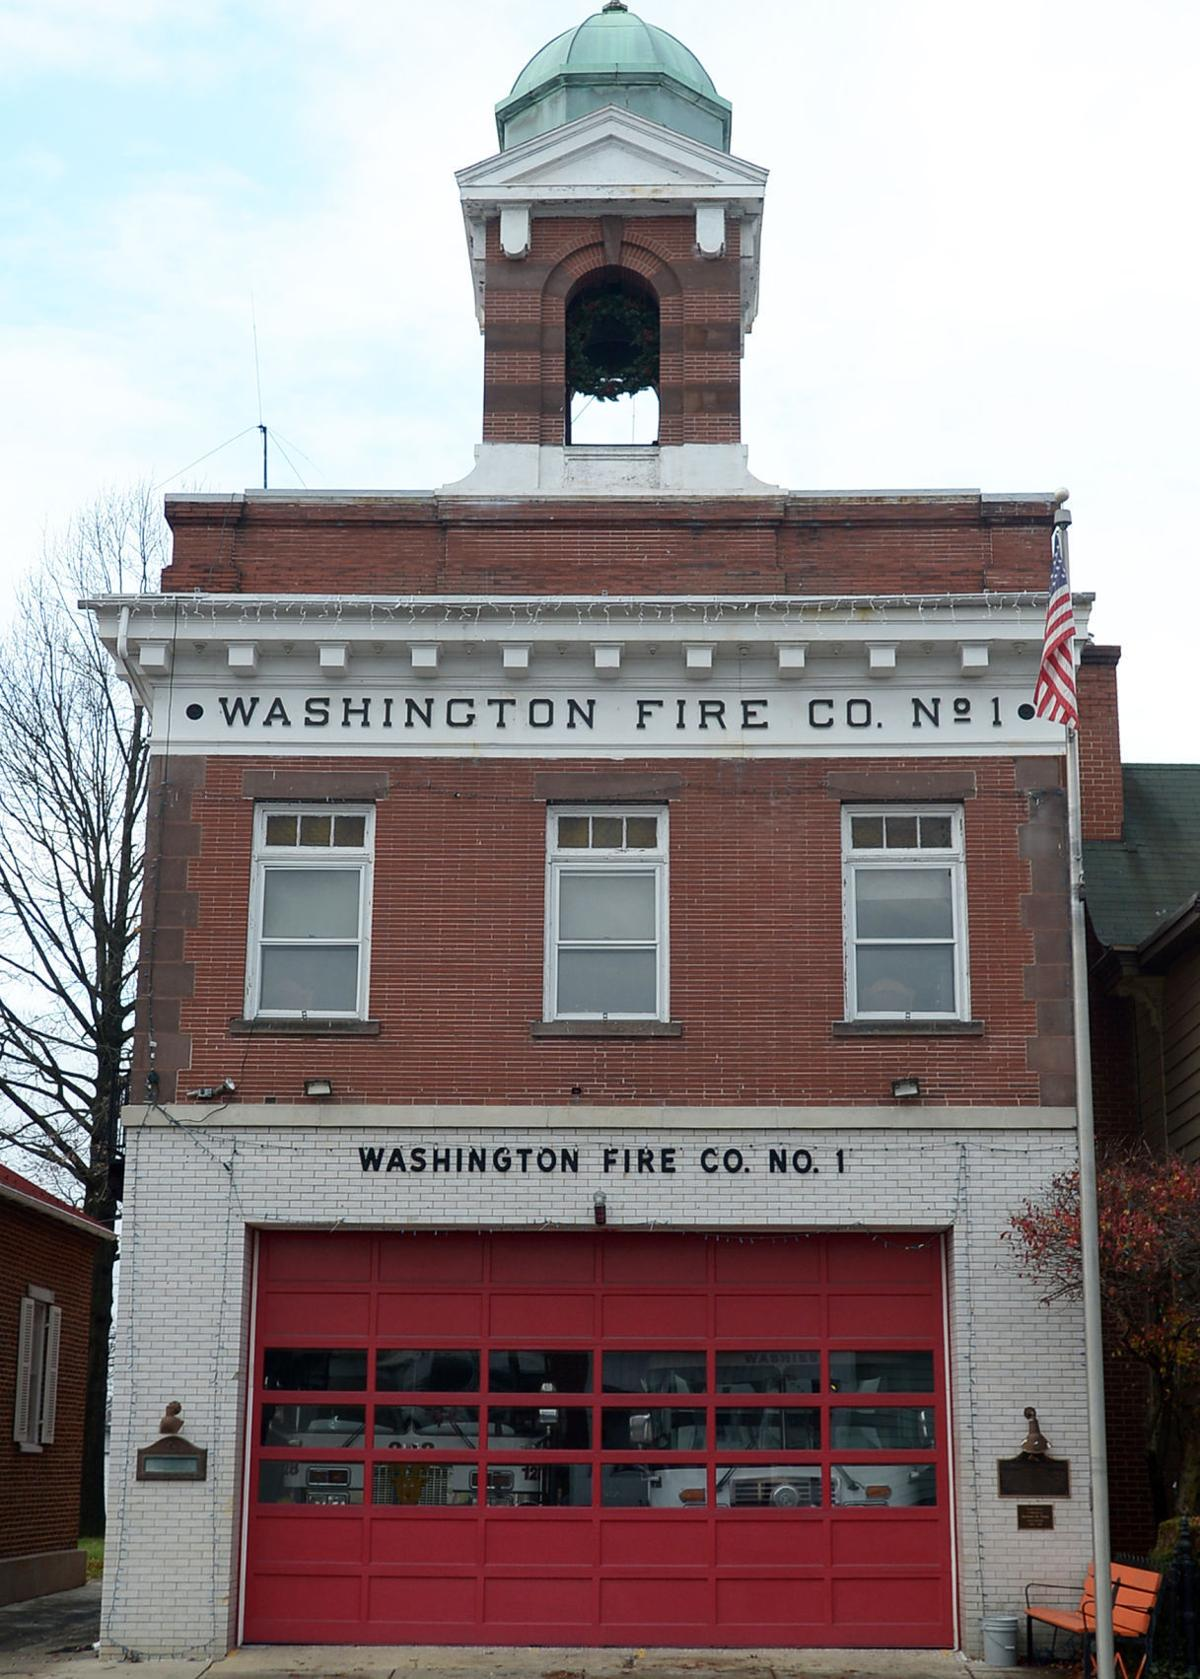 Washington Fire Company